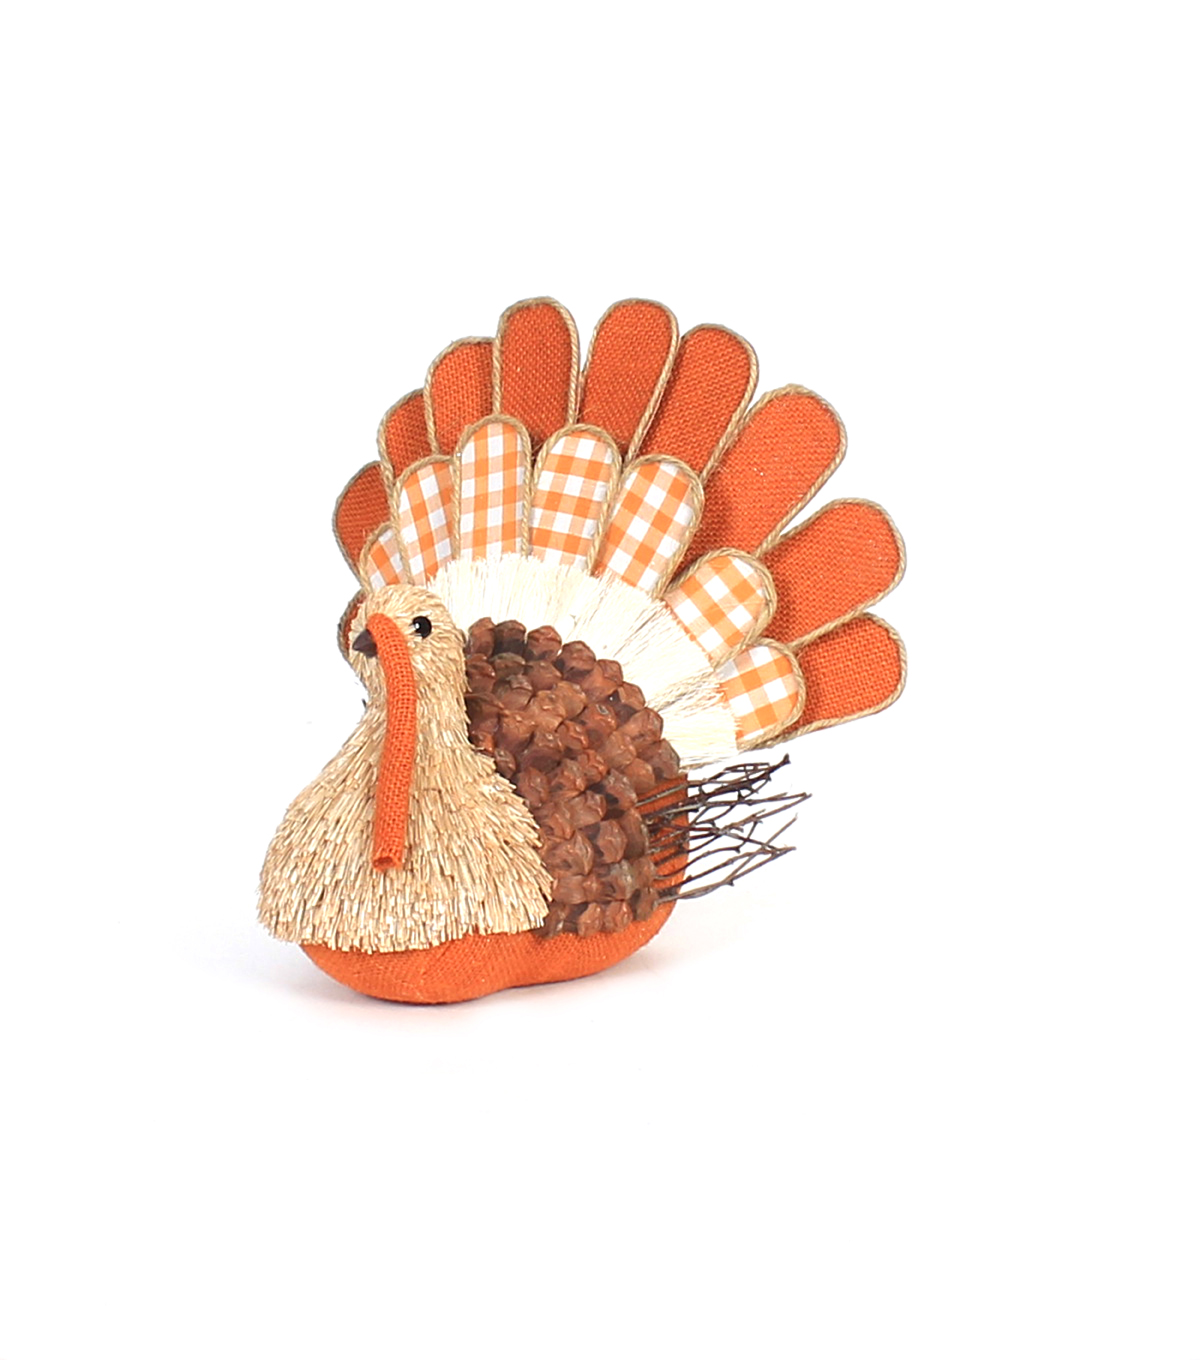 Simply Autumn Sisal Turkey Decor